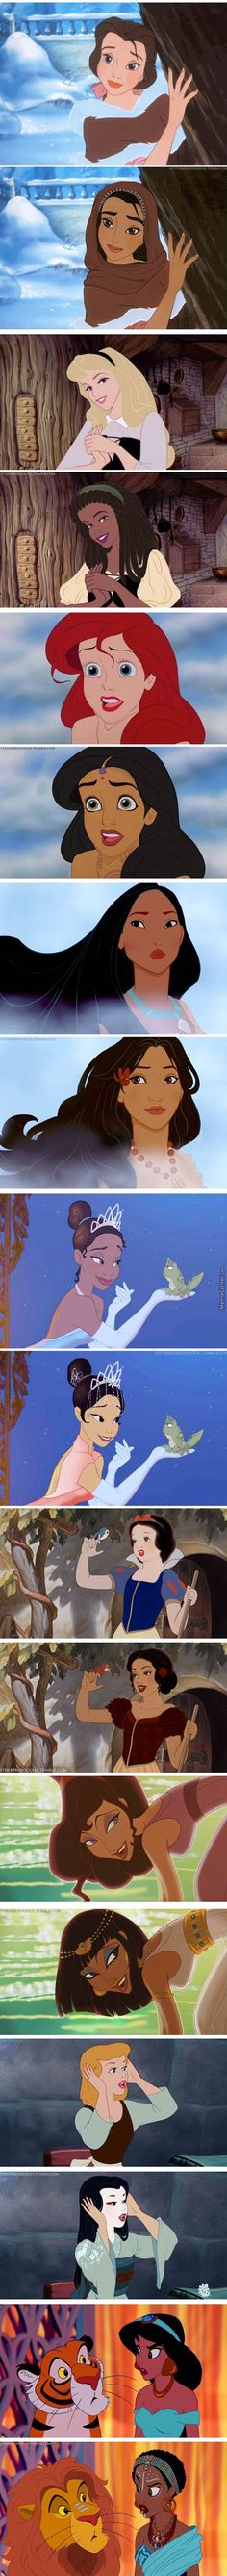 There is no snow in india, belle!